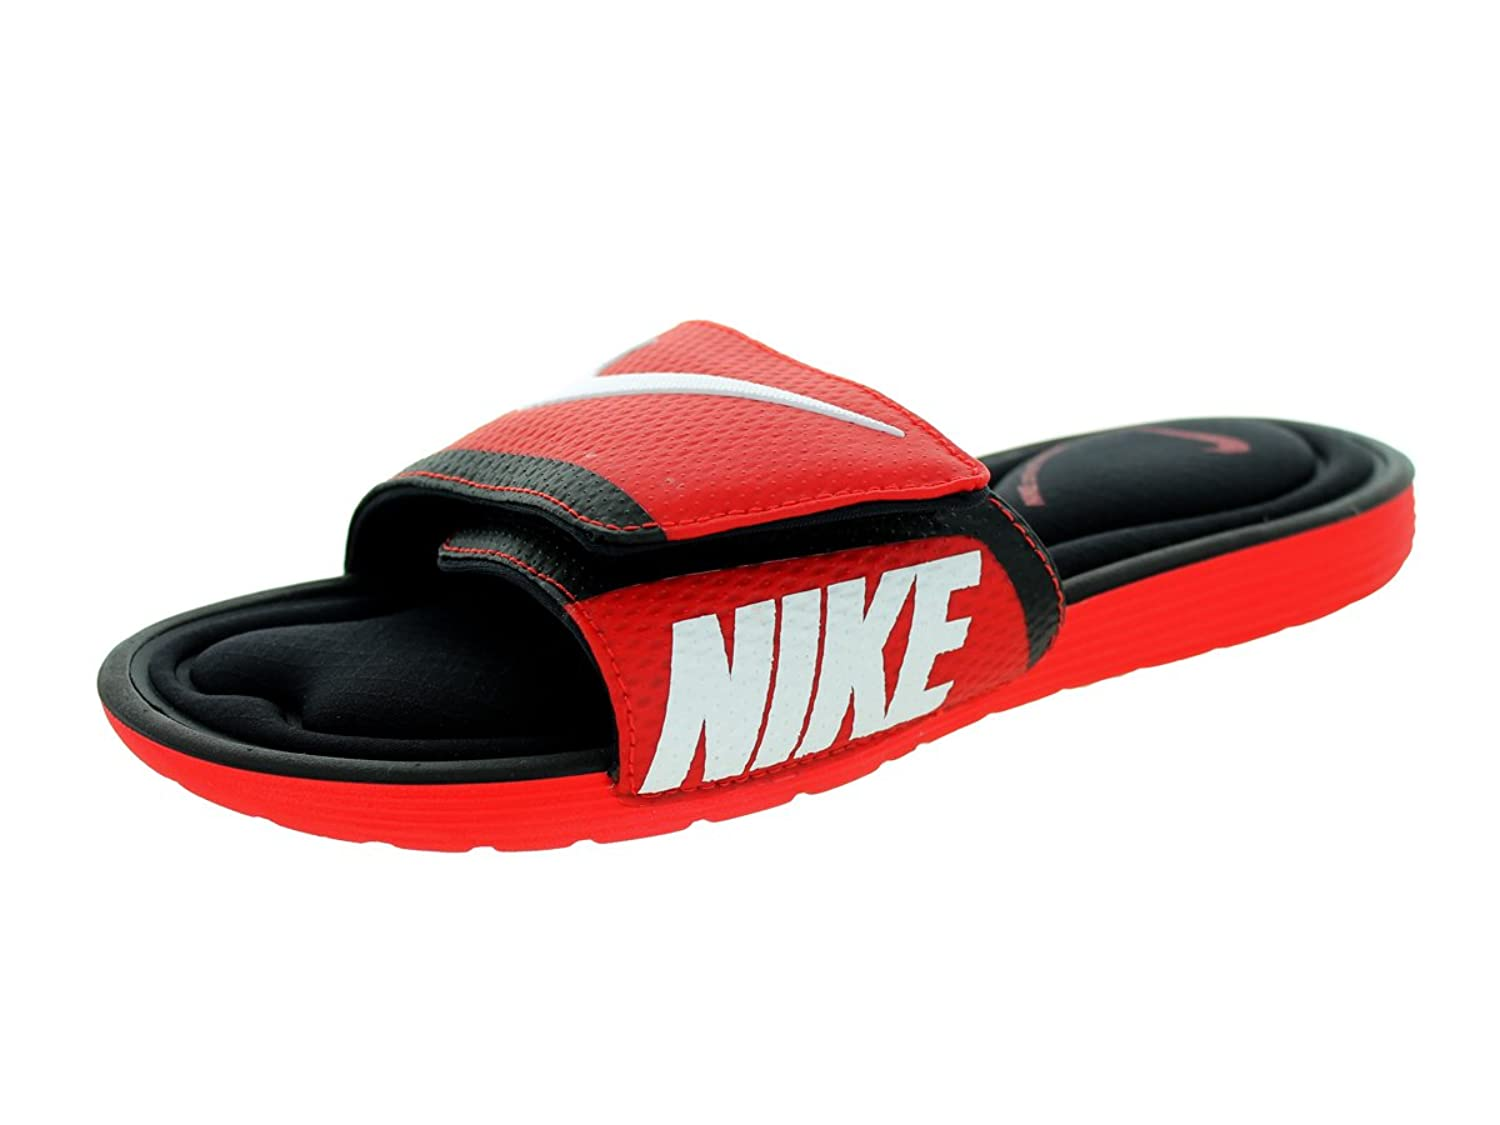 1150493a0 NIKE Men s Solarsoft Comfort Slide Athletic Sandal